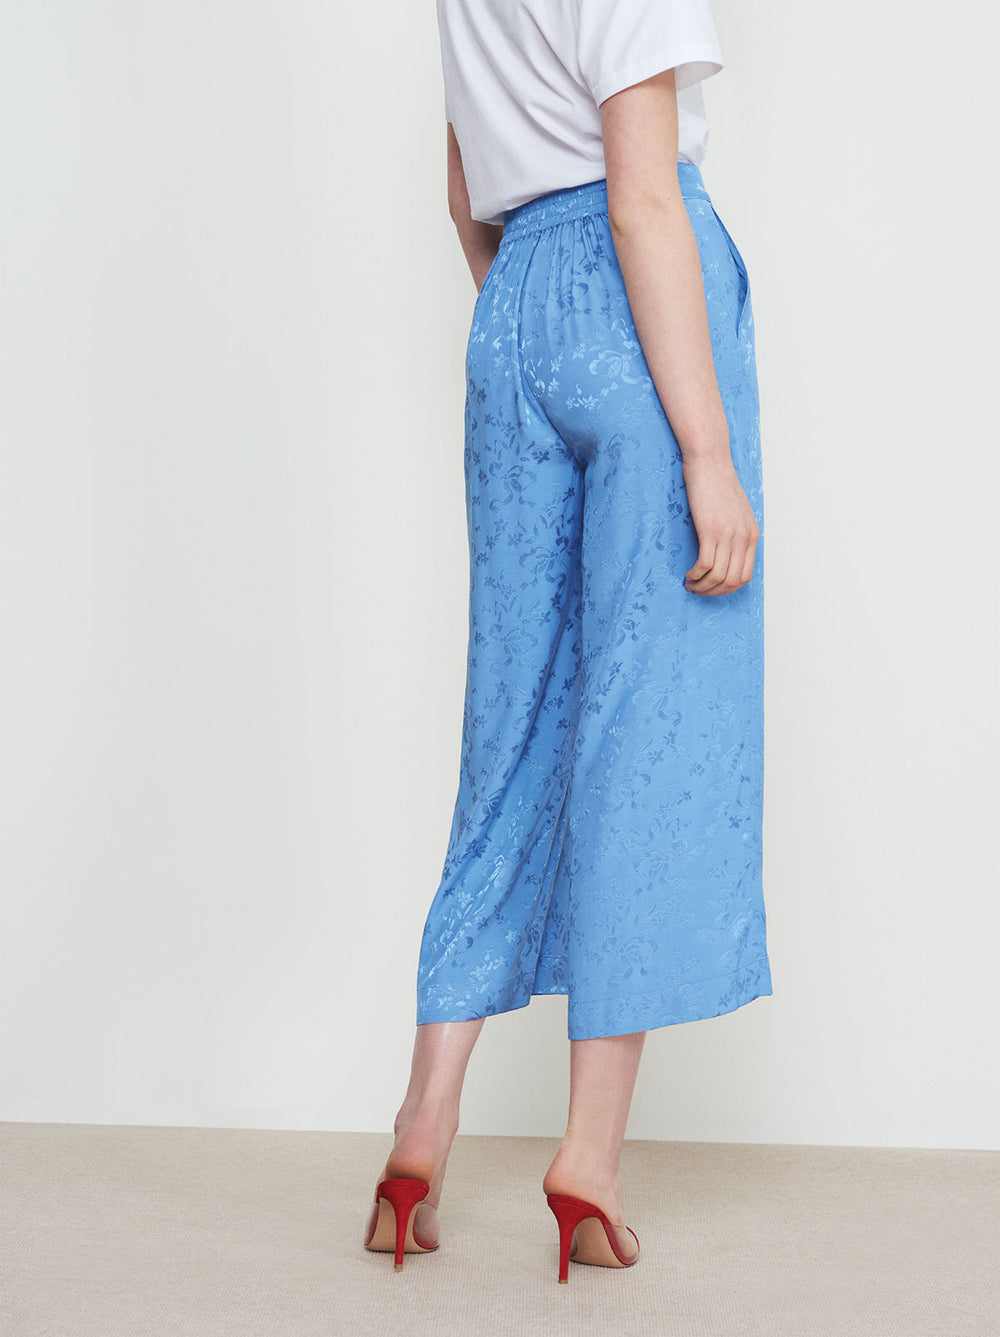 Wheeldon Cornflower Blue PJ Culotte Trousers by KITRI Studio